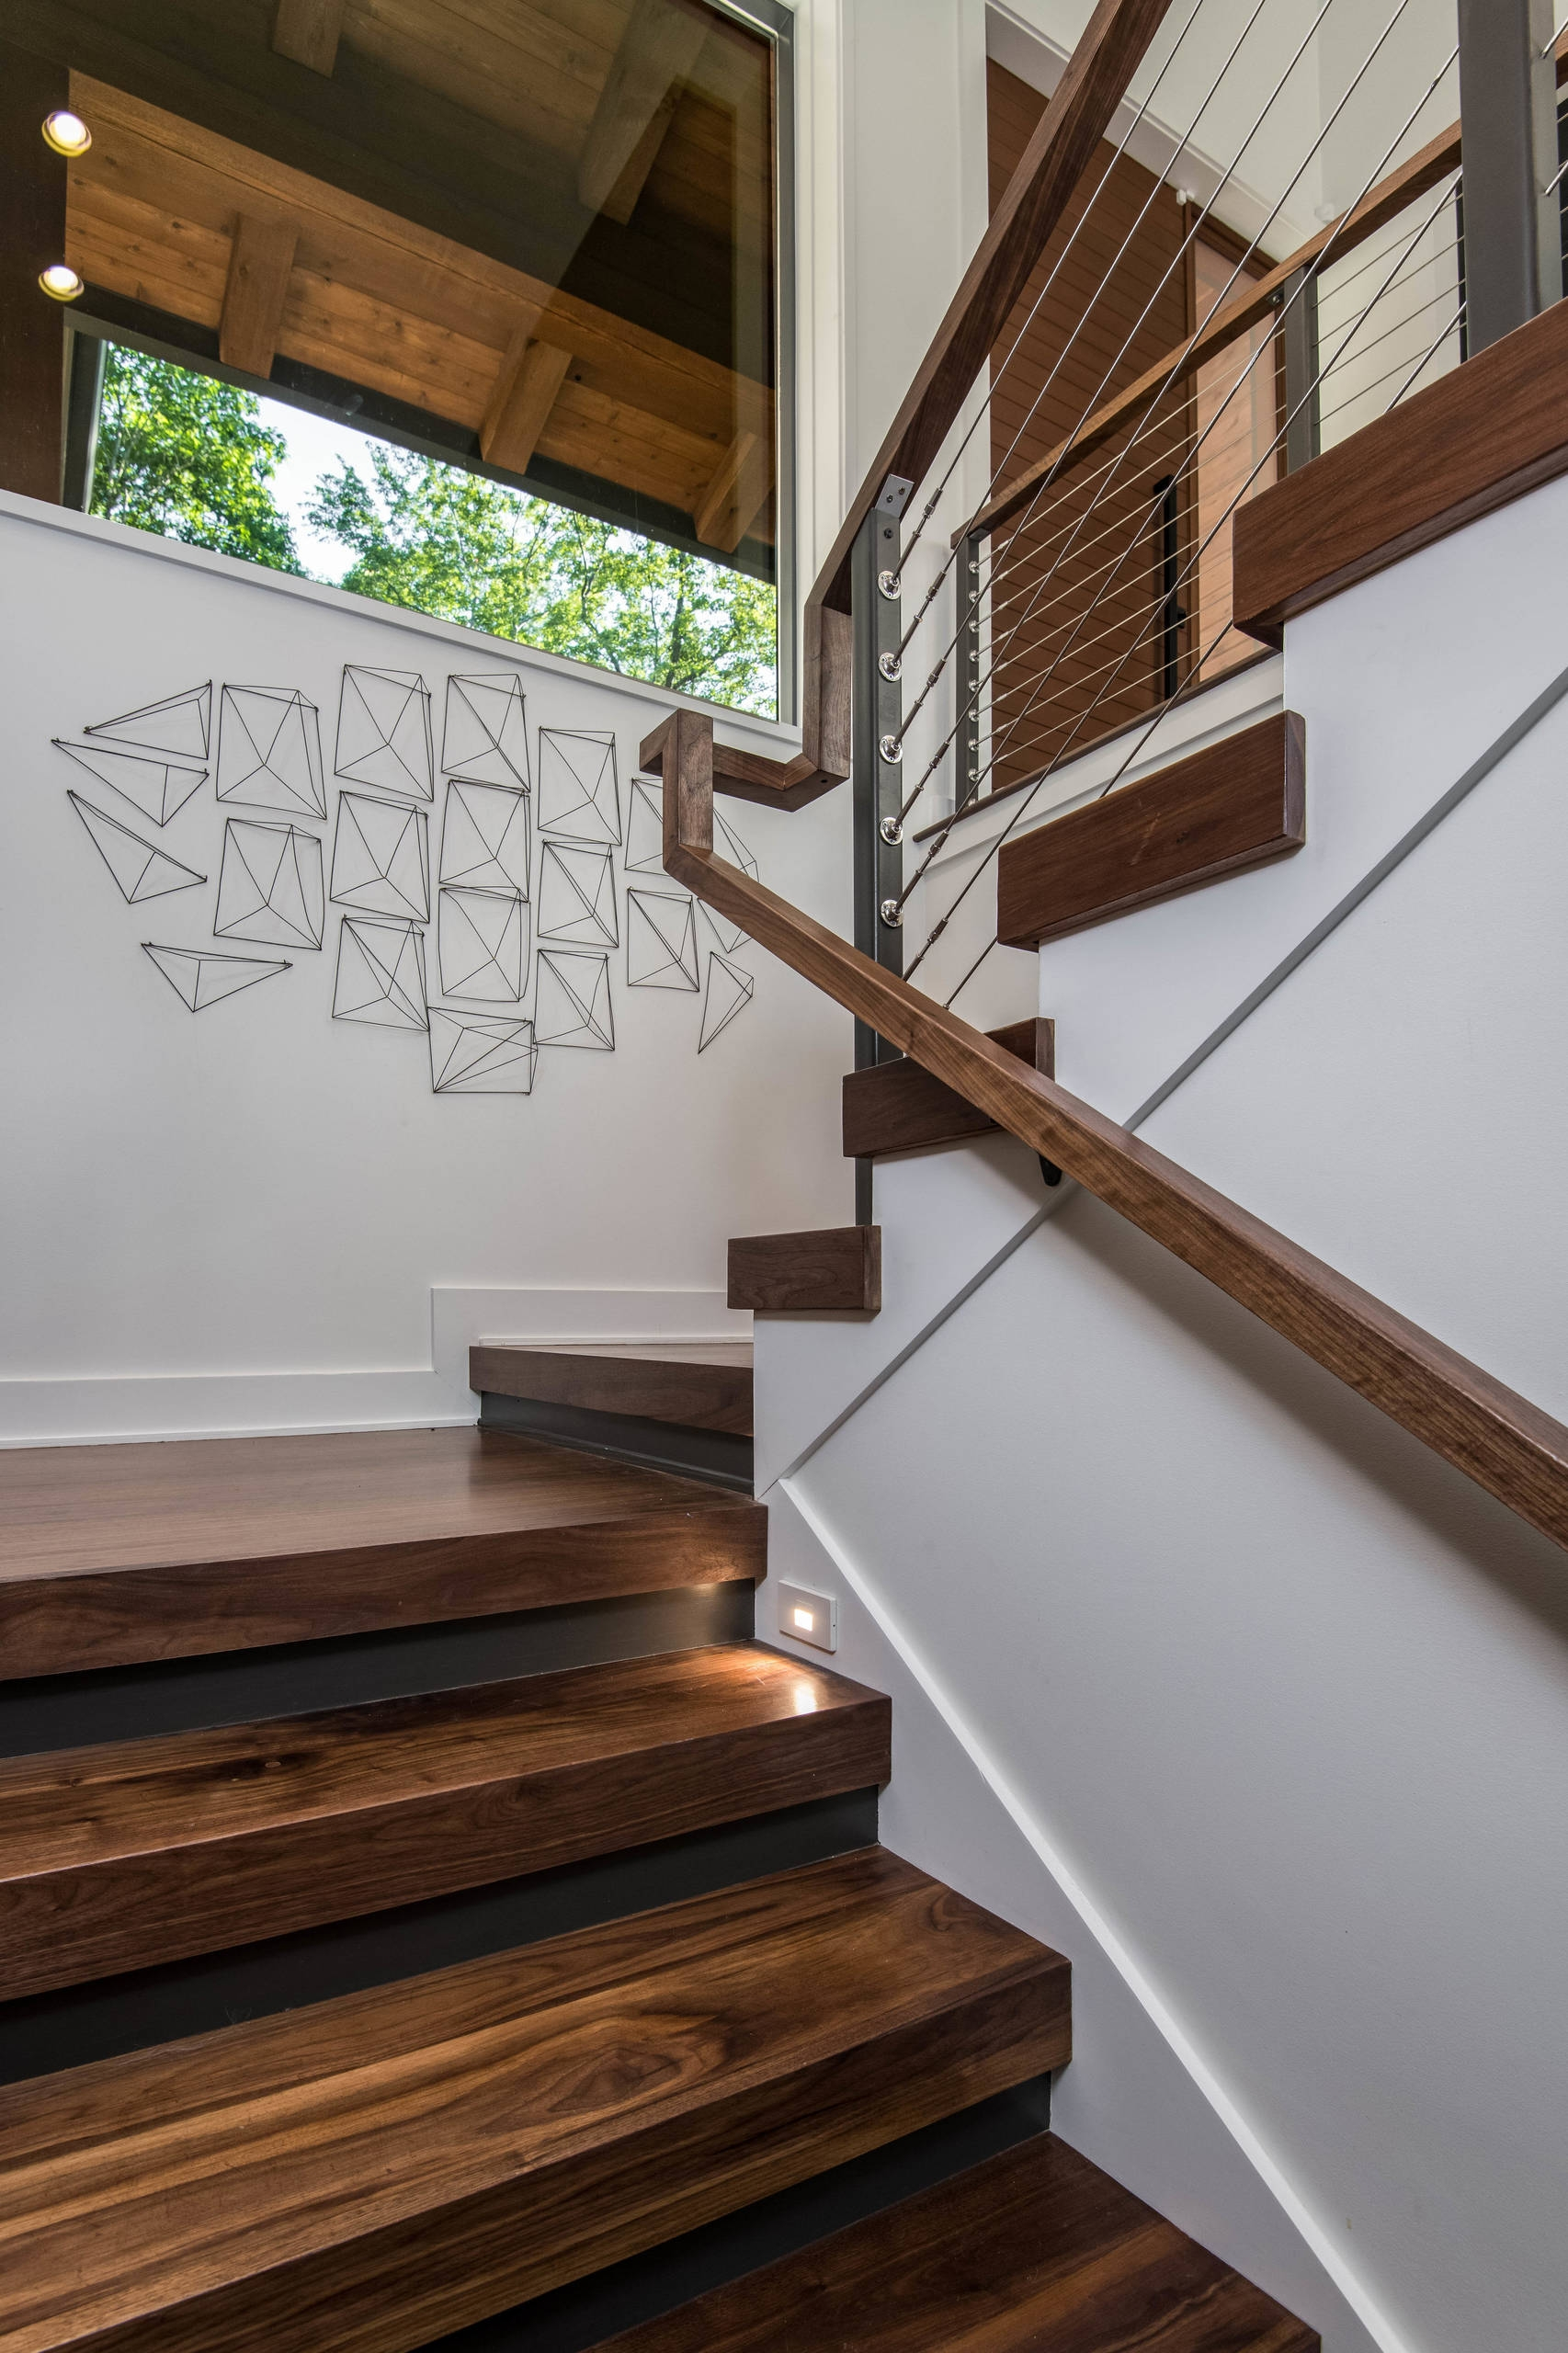 75 Beautiful Modern Staircase Pictures Ideas September 2020 | Simple Staircase Designs For Homes | Kitchen | Interior | Tiny | Simple 2Nd Floor House | Space Saving